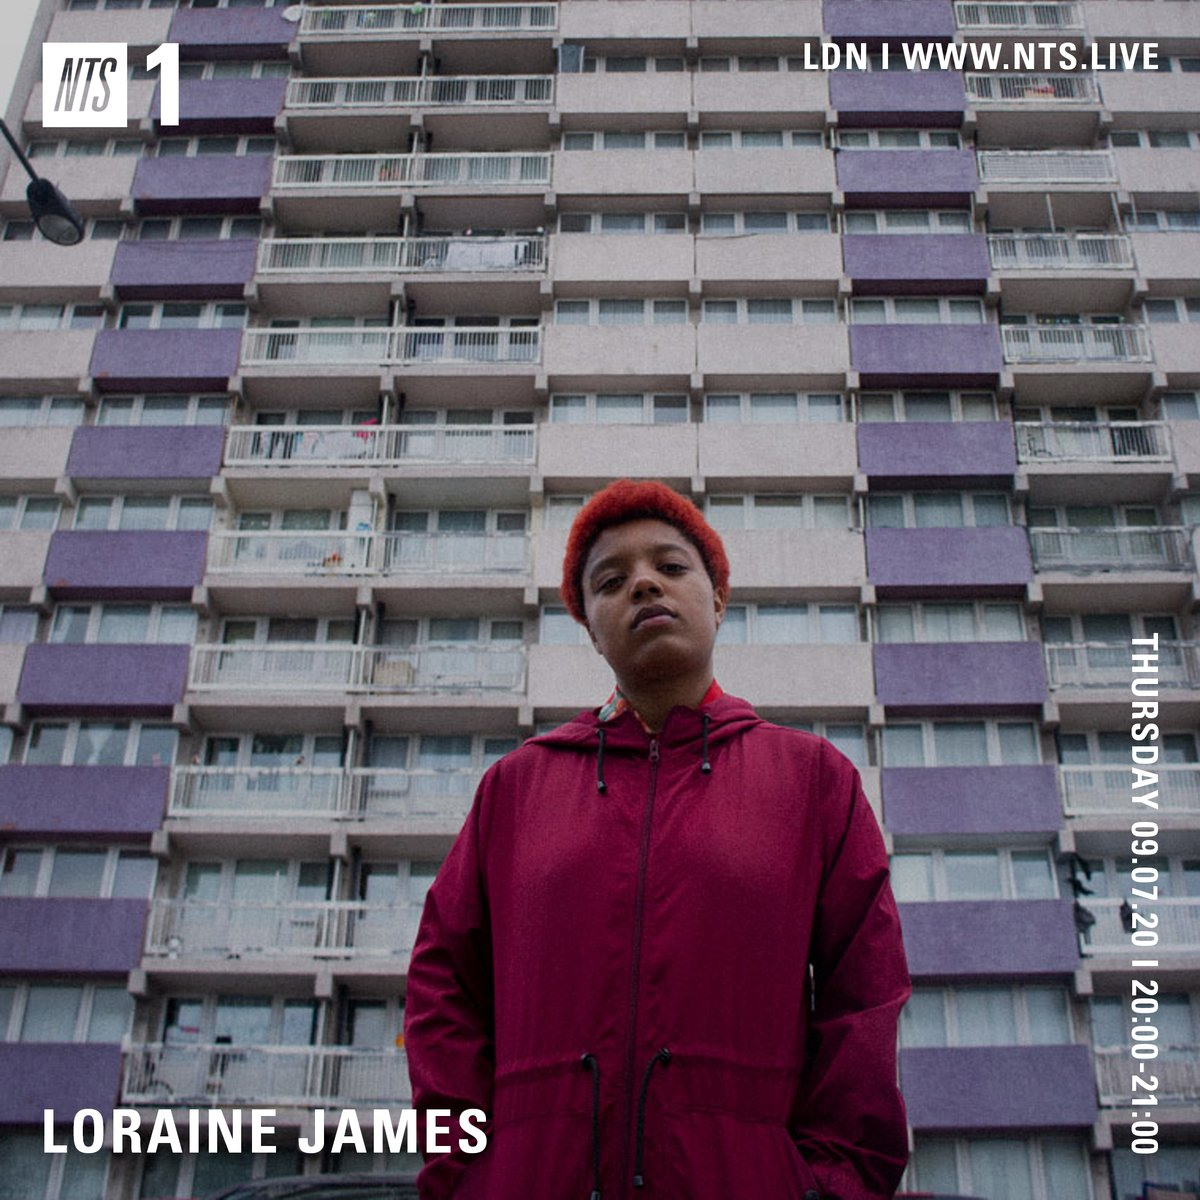 Tune in at 8pm (UK time) for my first NTS show. Will be on the nts chat from 8, so say hey